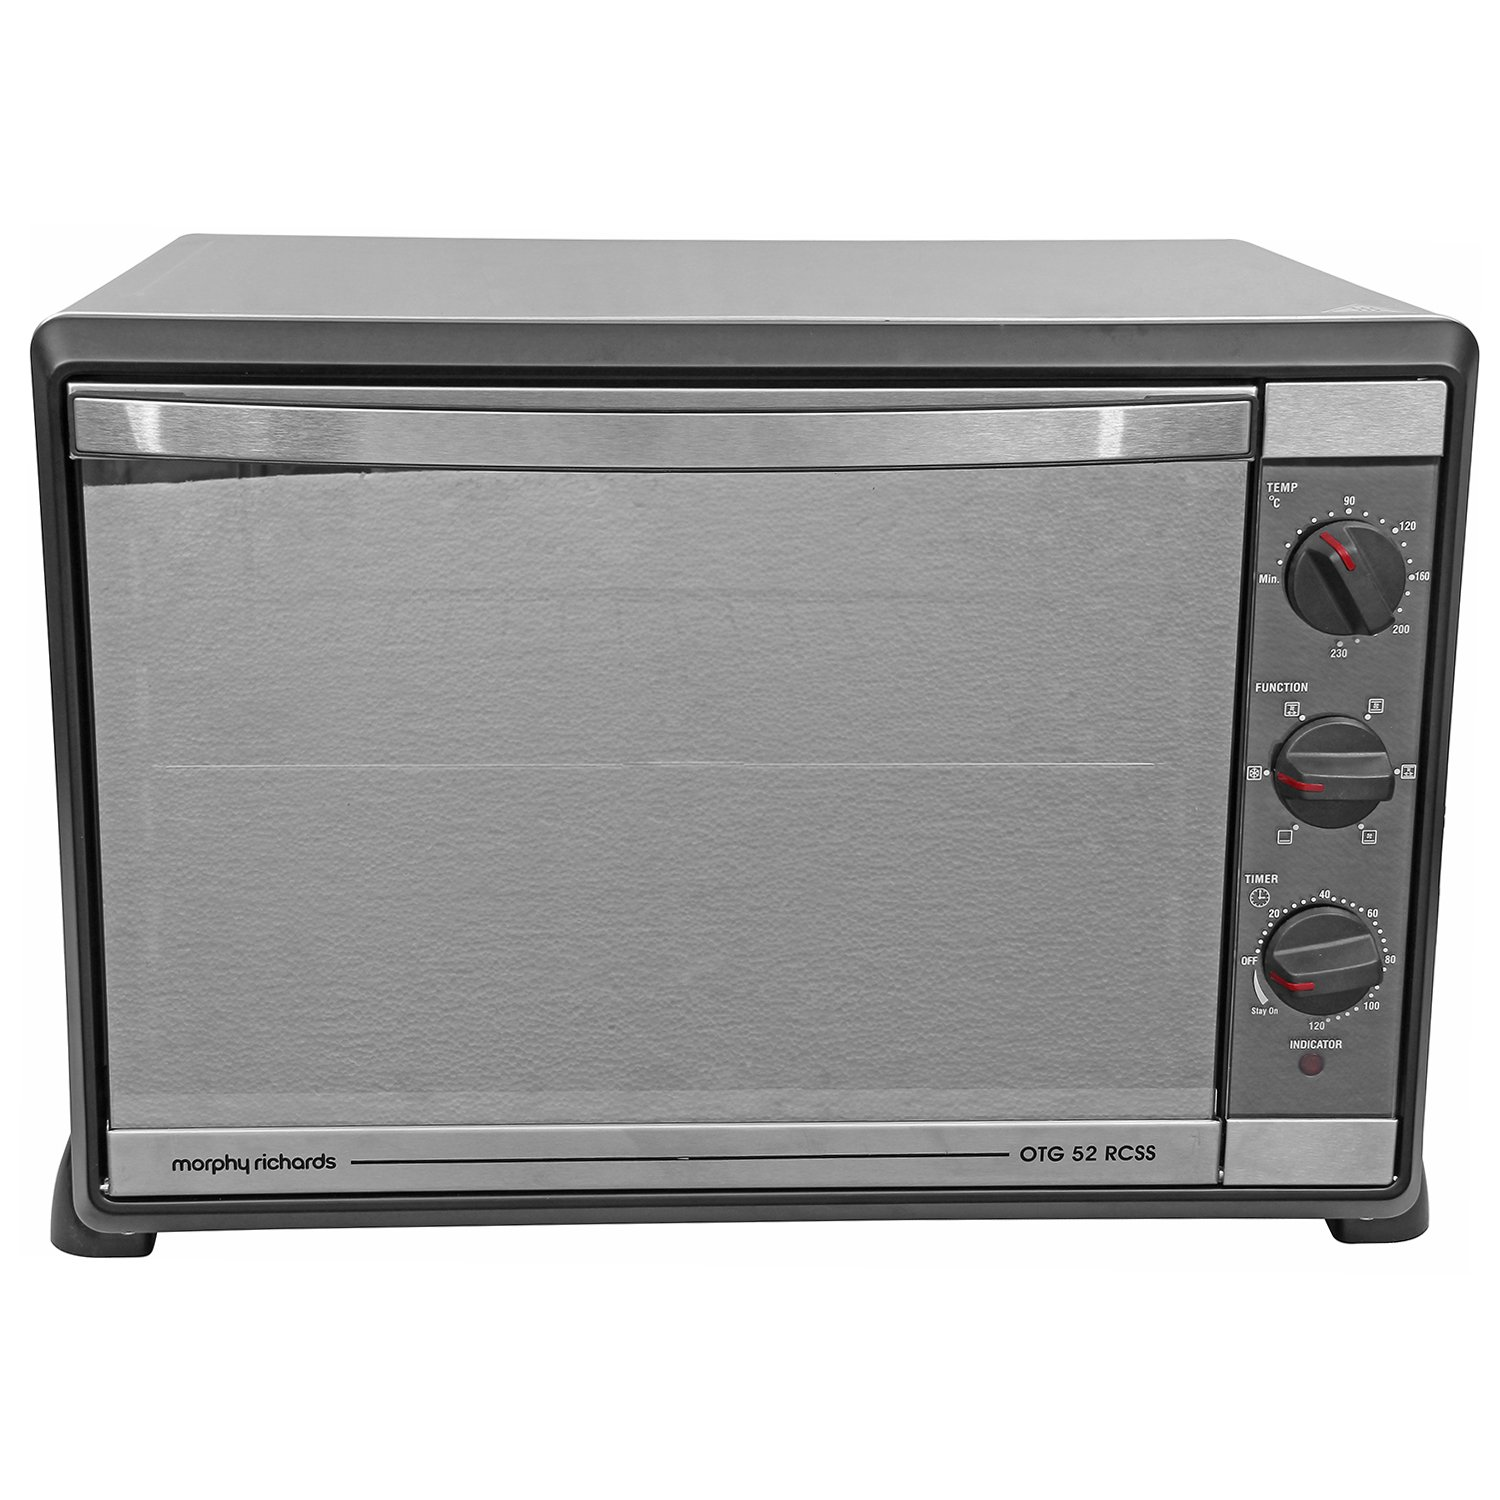 Morphy Richards 52 Rcss 52 Litre Oven Toaster Grill Black Buy Online In Thailand At Thailand Desertcart Com Productid 64885247 Morphy richards is a premium small appliance brand committed to providing high quality products with fresh and inspirational design and revolutionary technology. morphy richards 52 rcss 52 litre oven